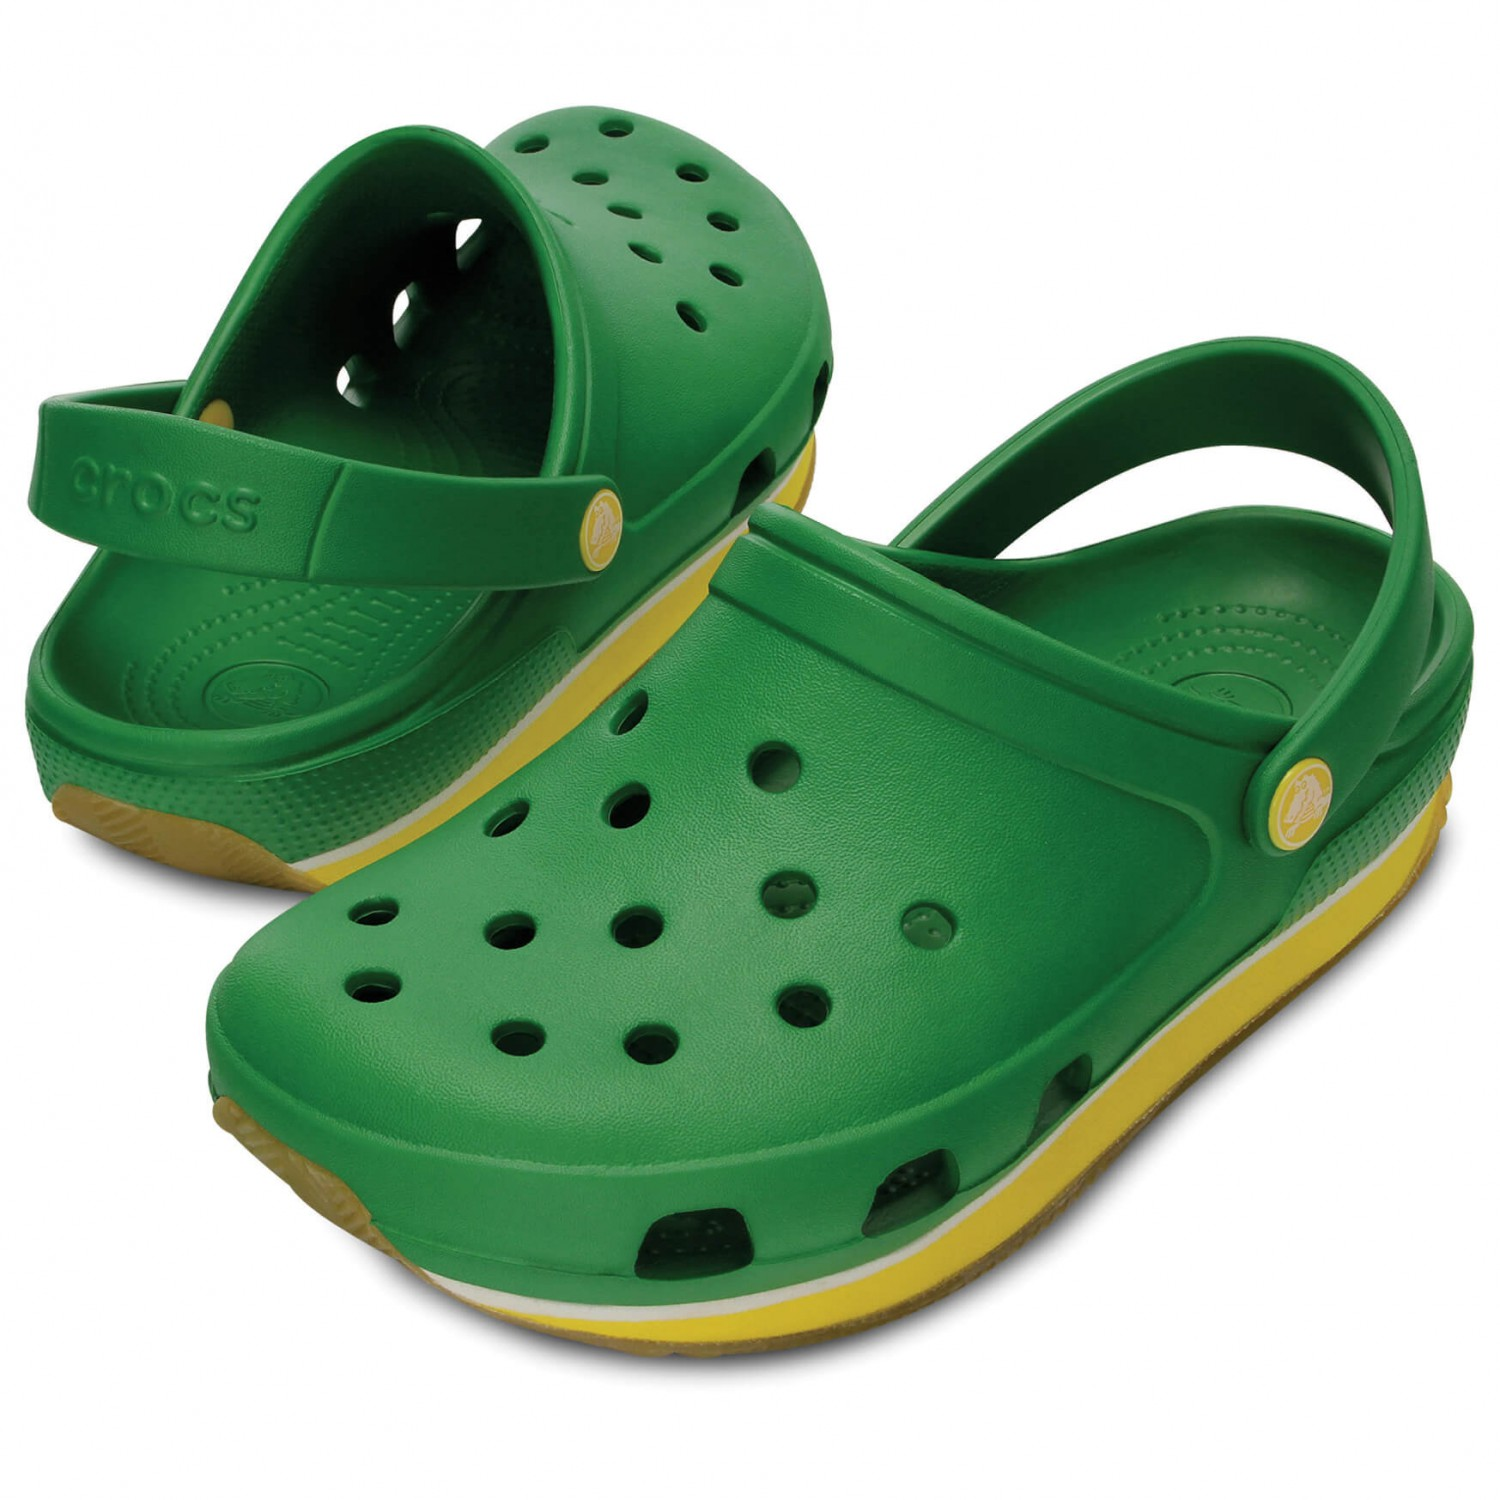 low priced 61ec1 6e20f Crocs - Retro Clog